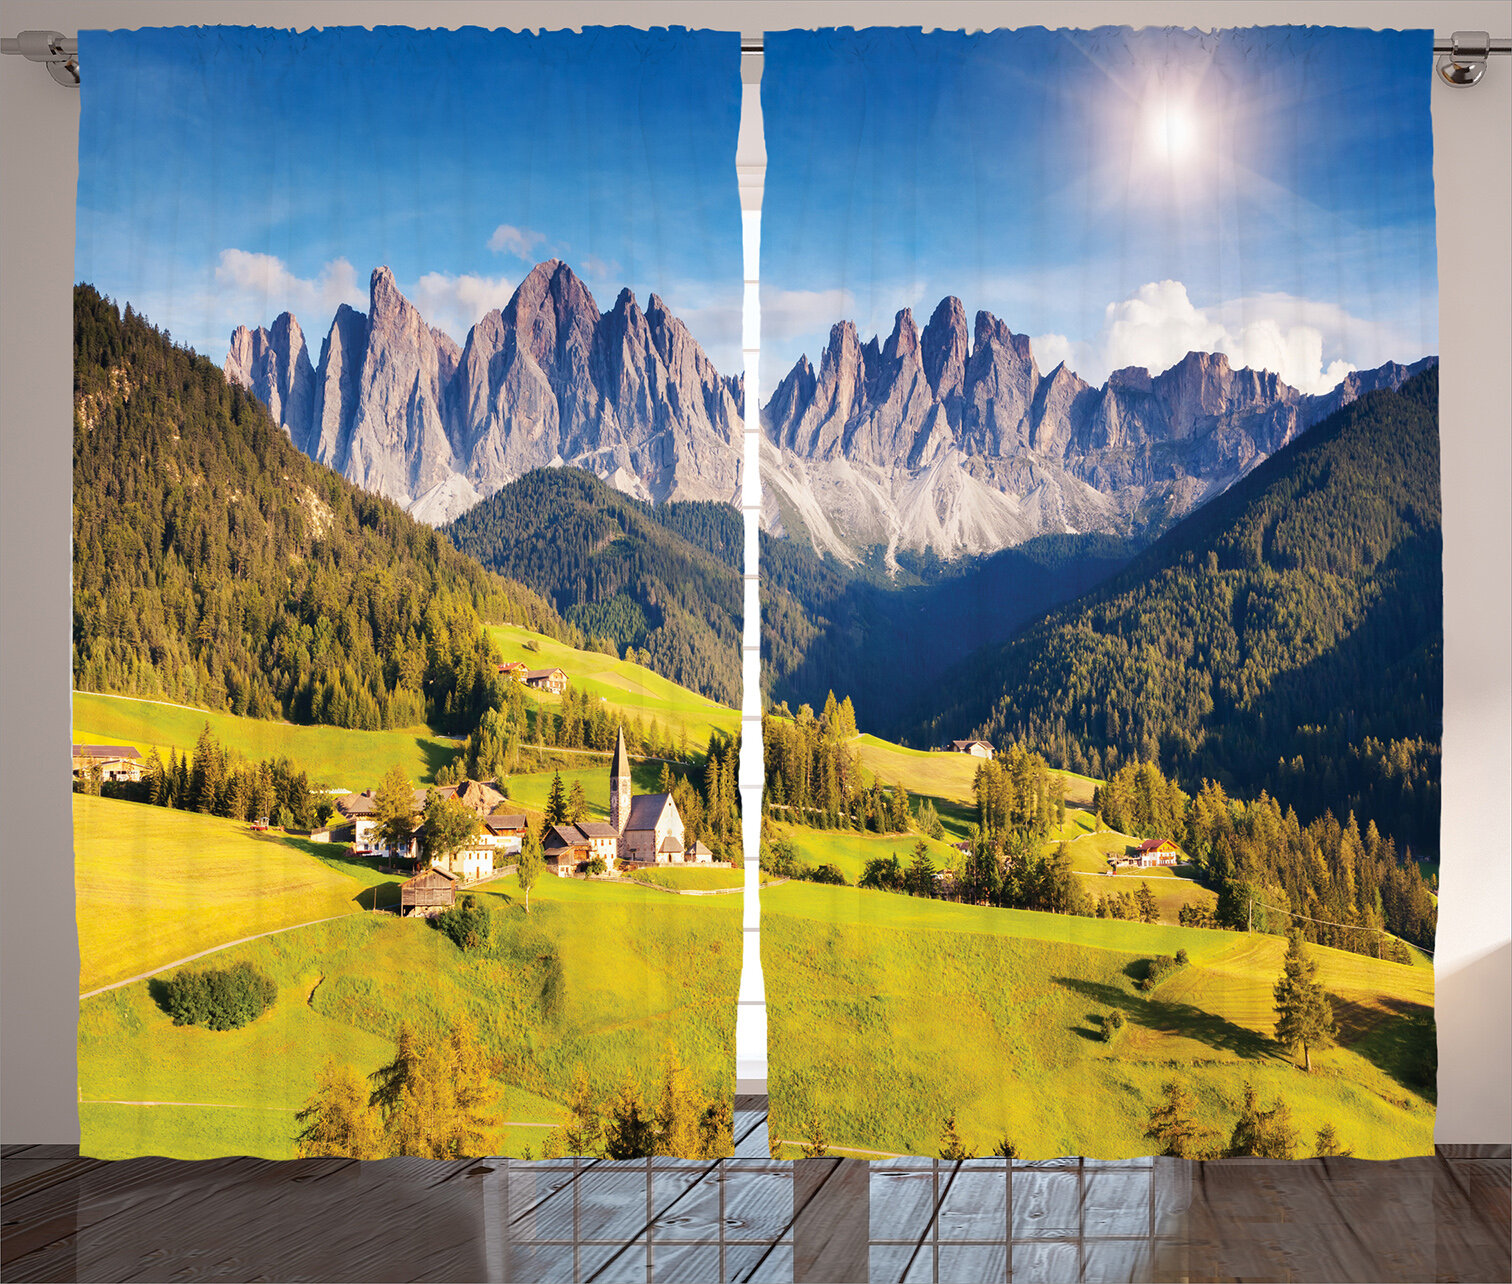 dd6f4b8831b East Urban Home Scenery Village View with Lined Mountain Peaks and Meadow  Northern European Alps Art Graphic Print   Text Semi-Sheer Rod Pocket  Curtain ...